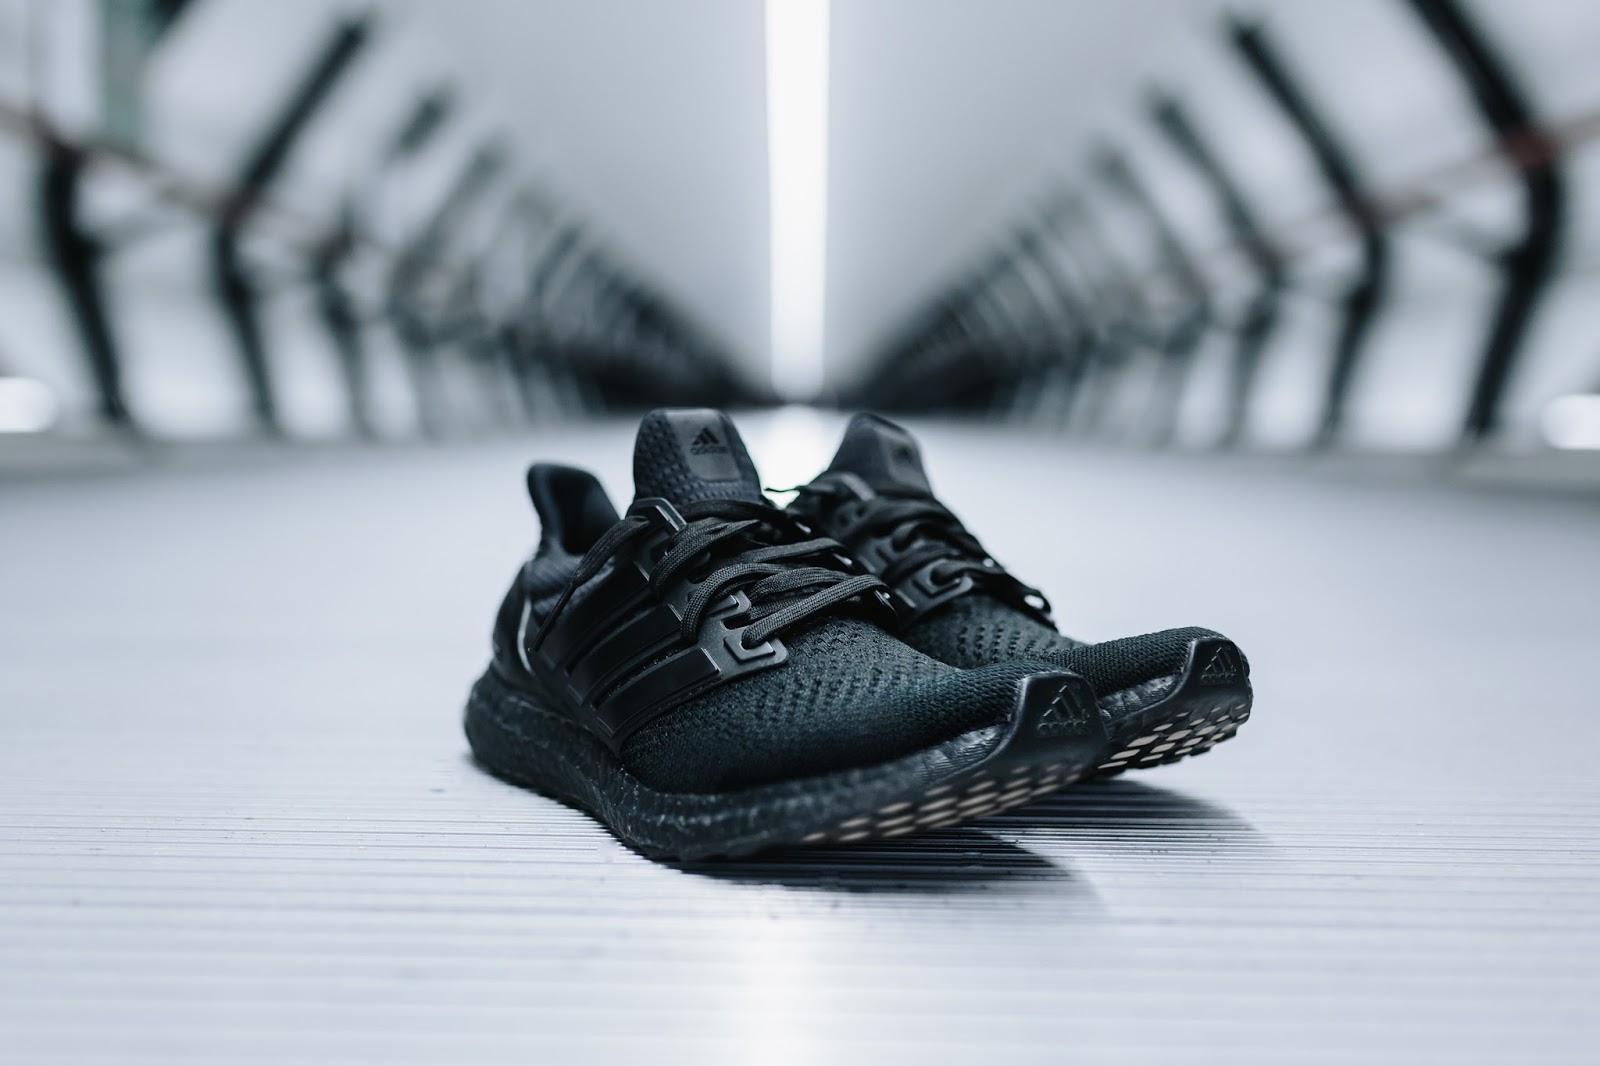 372e45ec47fe7 The long awaited  Triple Black  adidas Ultra Boost is finally here. The  adidas UltraBOOST Triple Black features a full core black Primeknit upper  sitting ...